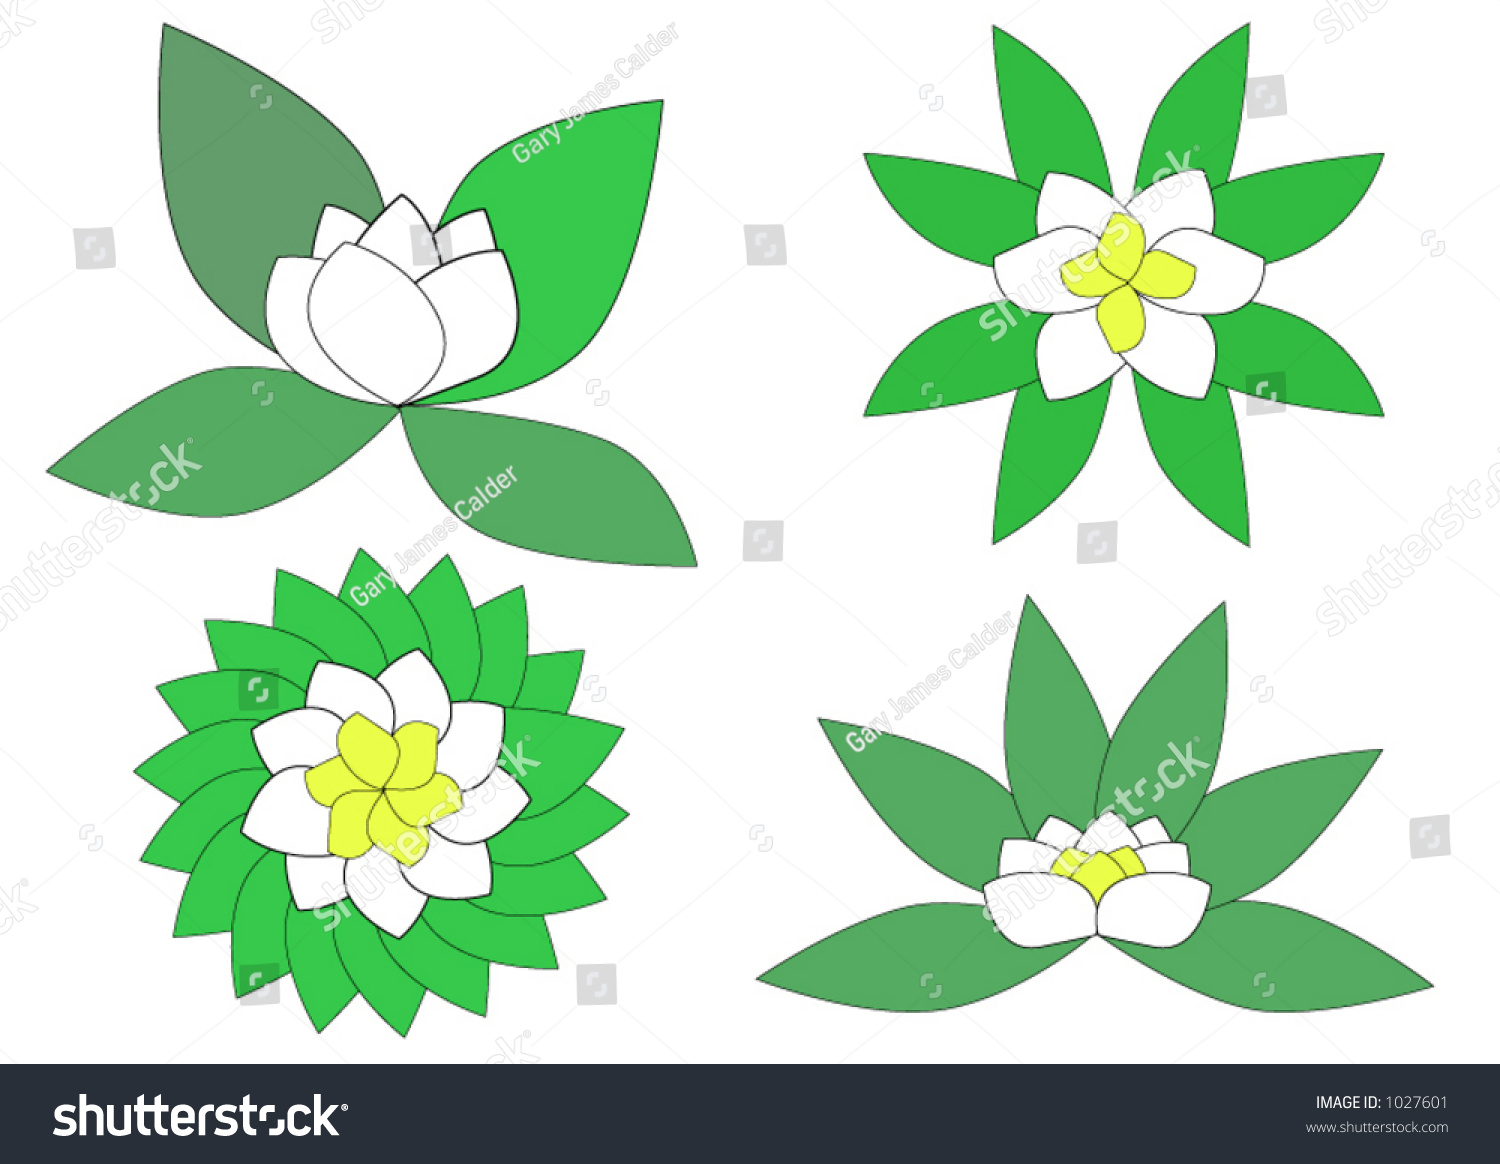 Lily flower designs stock vector royalty free 1027601 shutterstock lily flower designs izmirmasajfo